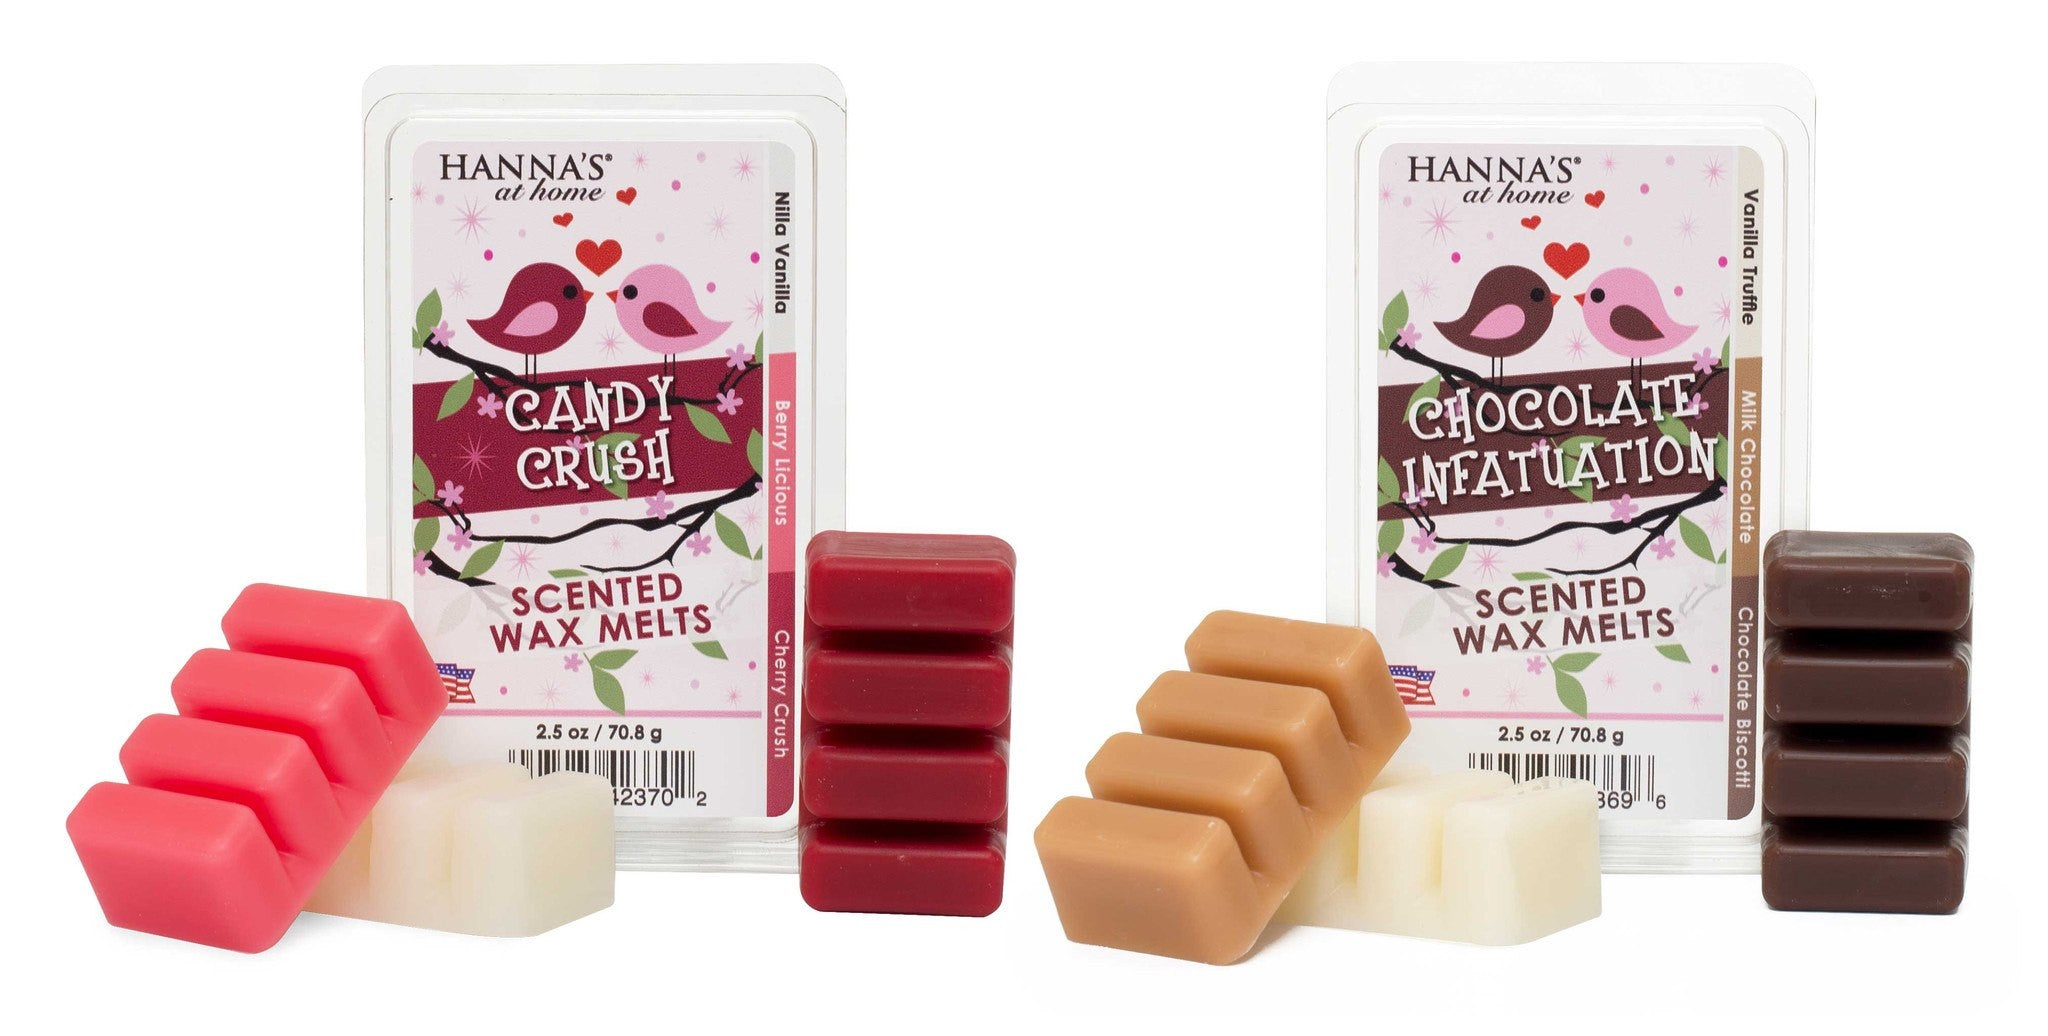 Valentine's Triple Pour Chocolate Infatuation Scented Wax Melts Melts Candlemart.com $ 2.49